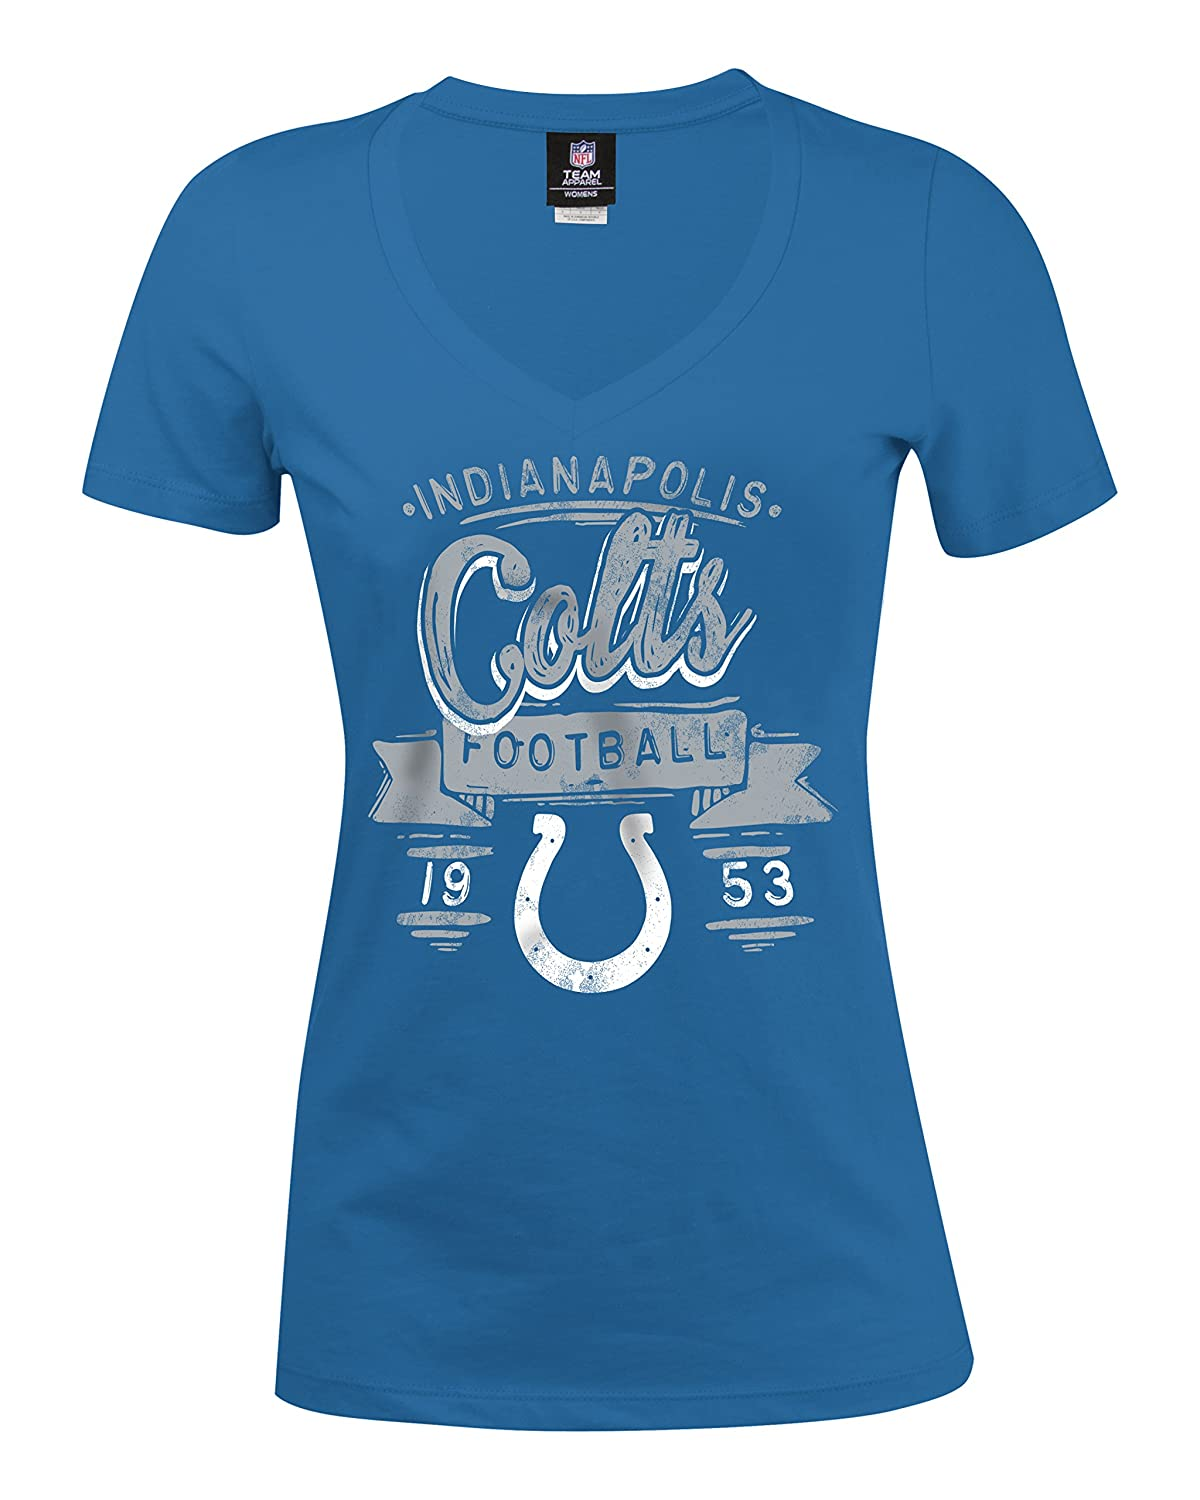 c0e9ffa0 Amazon.com : A-Team Apparel NFL Indianapolis Colts Women's Baby ...